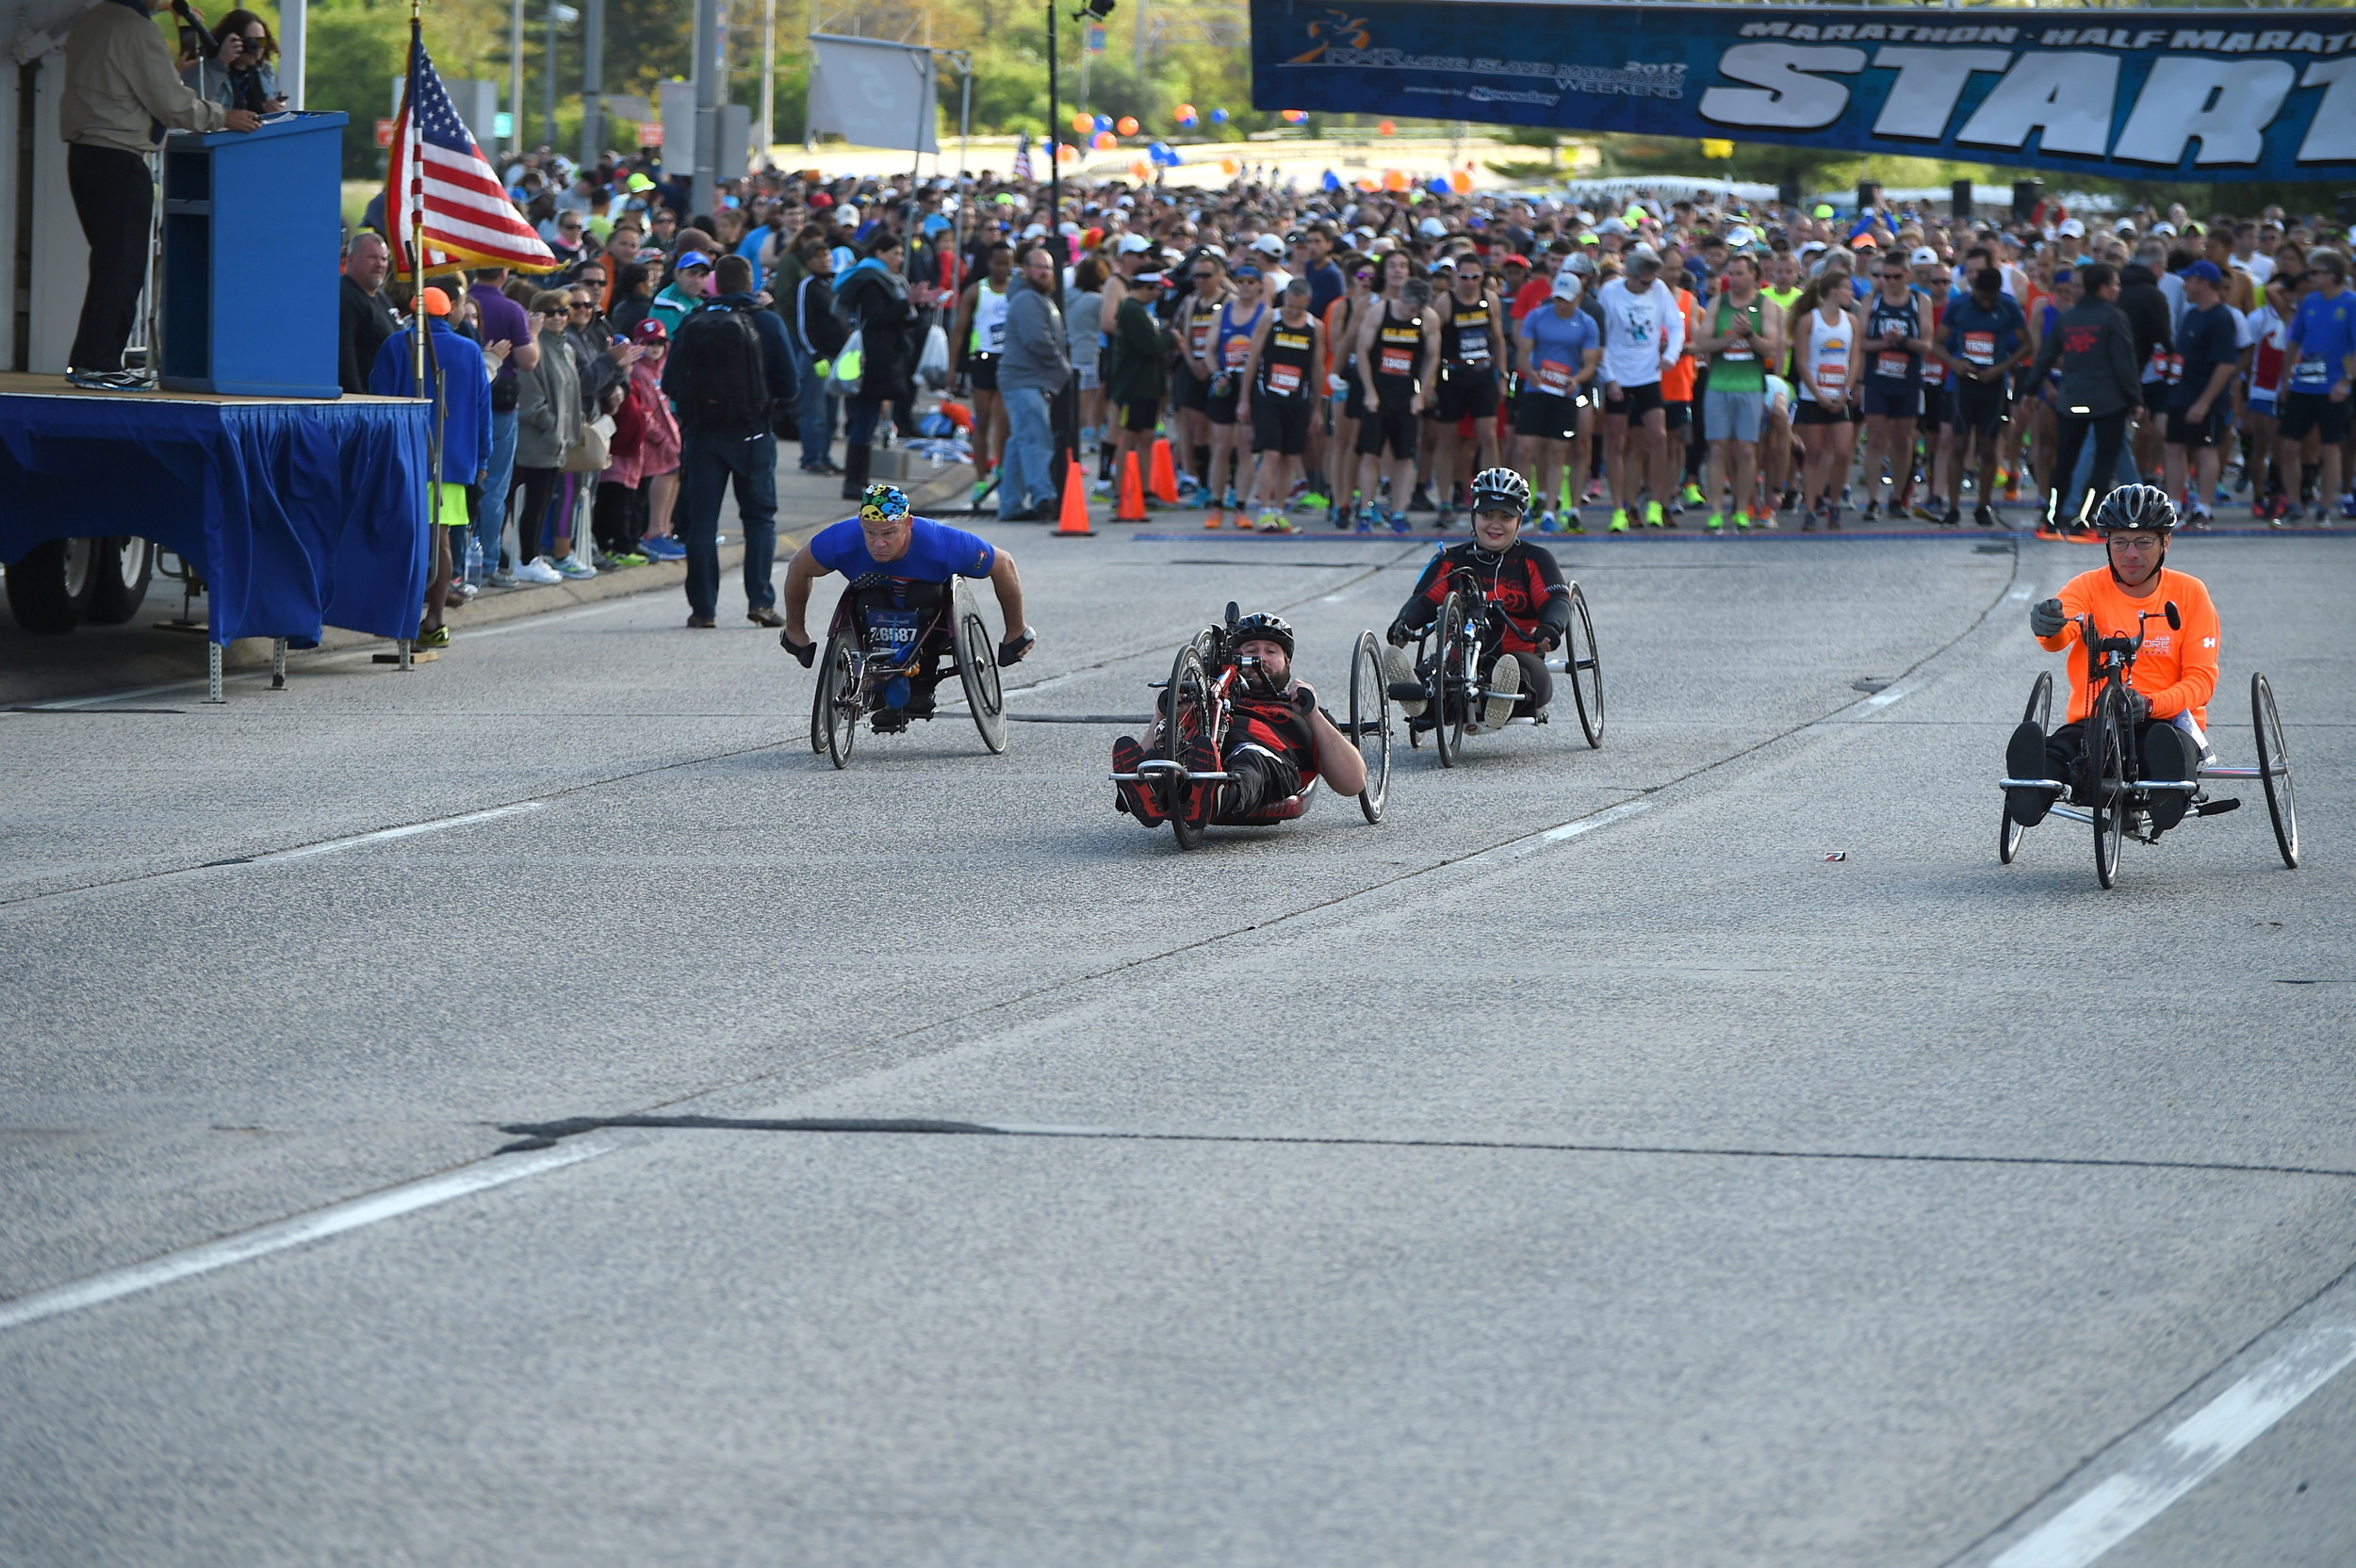 About 5,000 people, on feet and on wheels, take part in the Long Island Marathon.